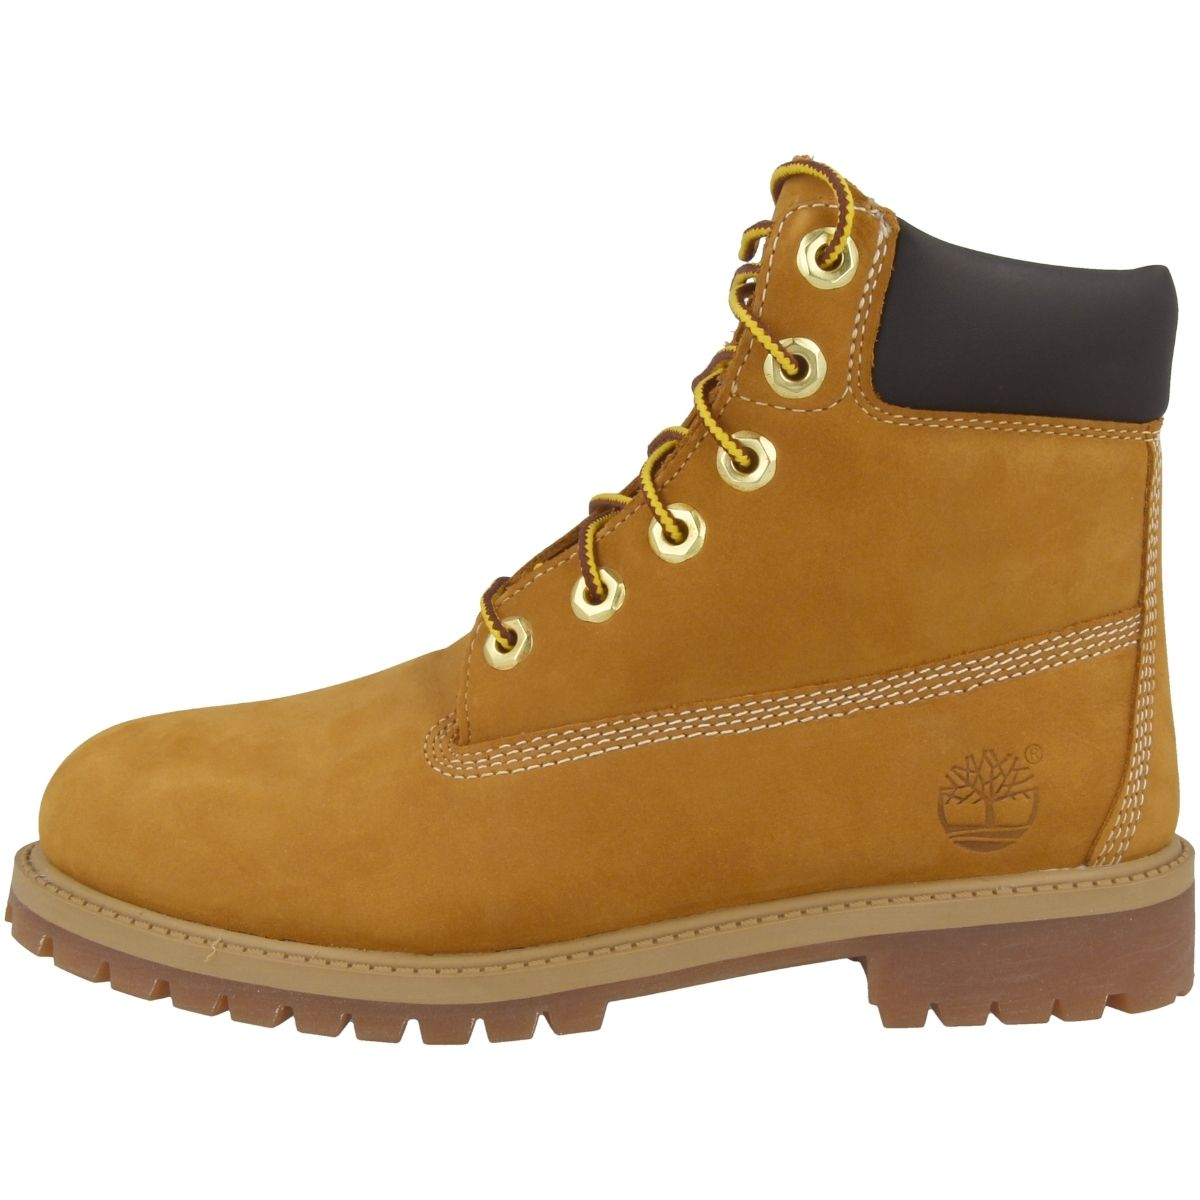 outlet for sale release date: order online TIMBERLAND 6 INCH PREMIUM BOOTS HIGH TOP SCHUHE STIEFEL ...